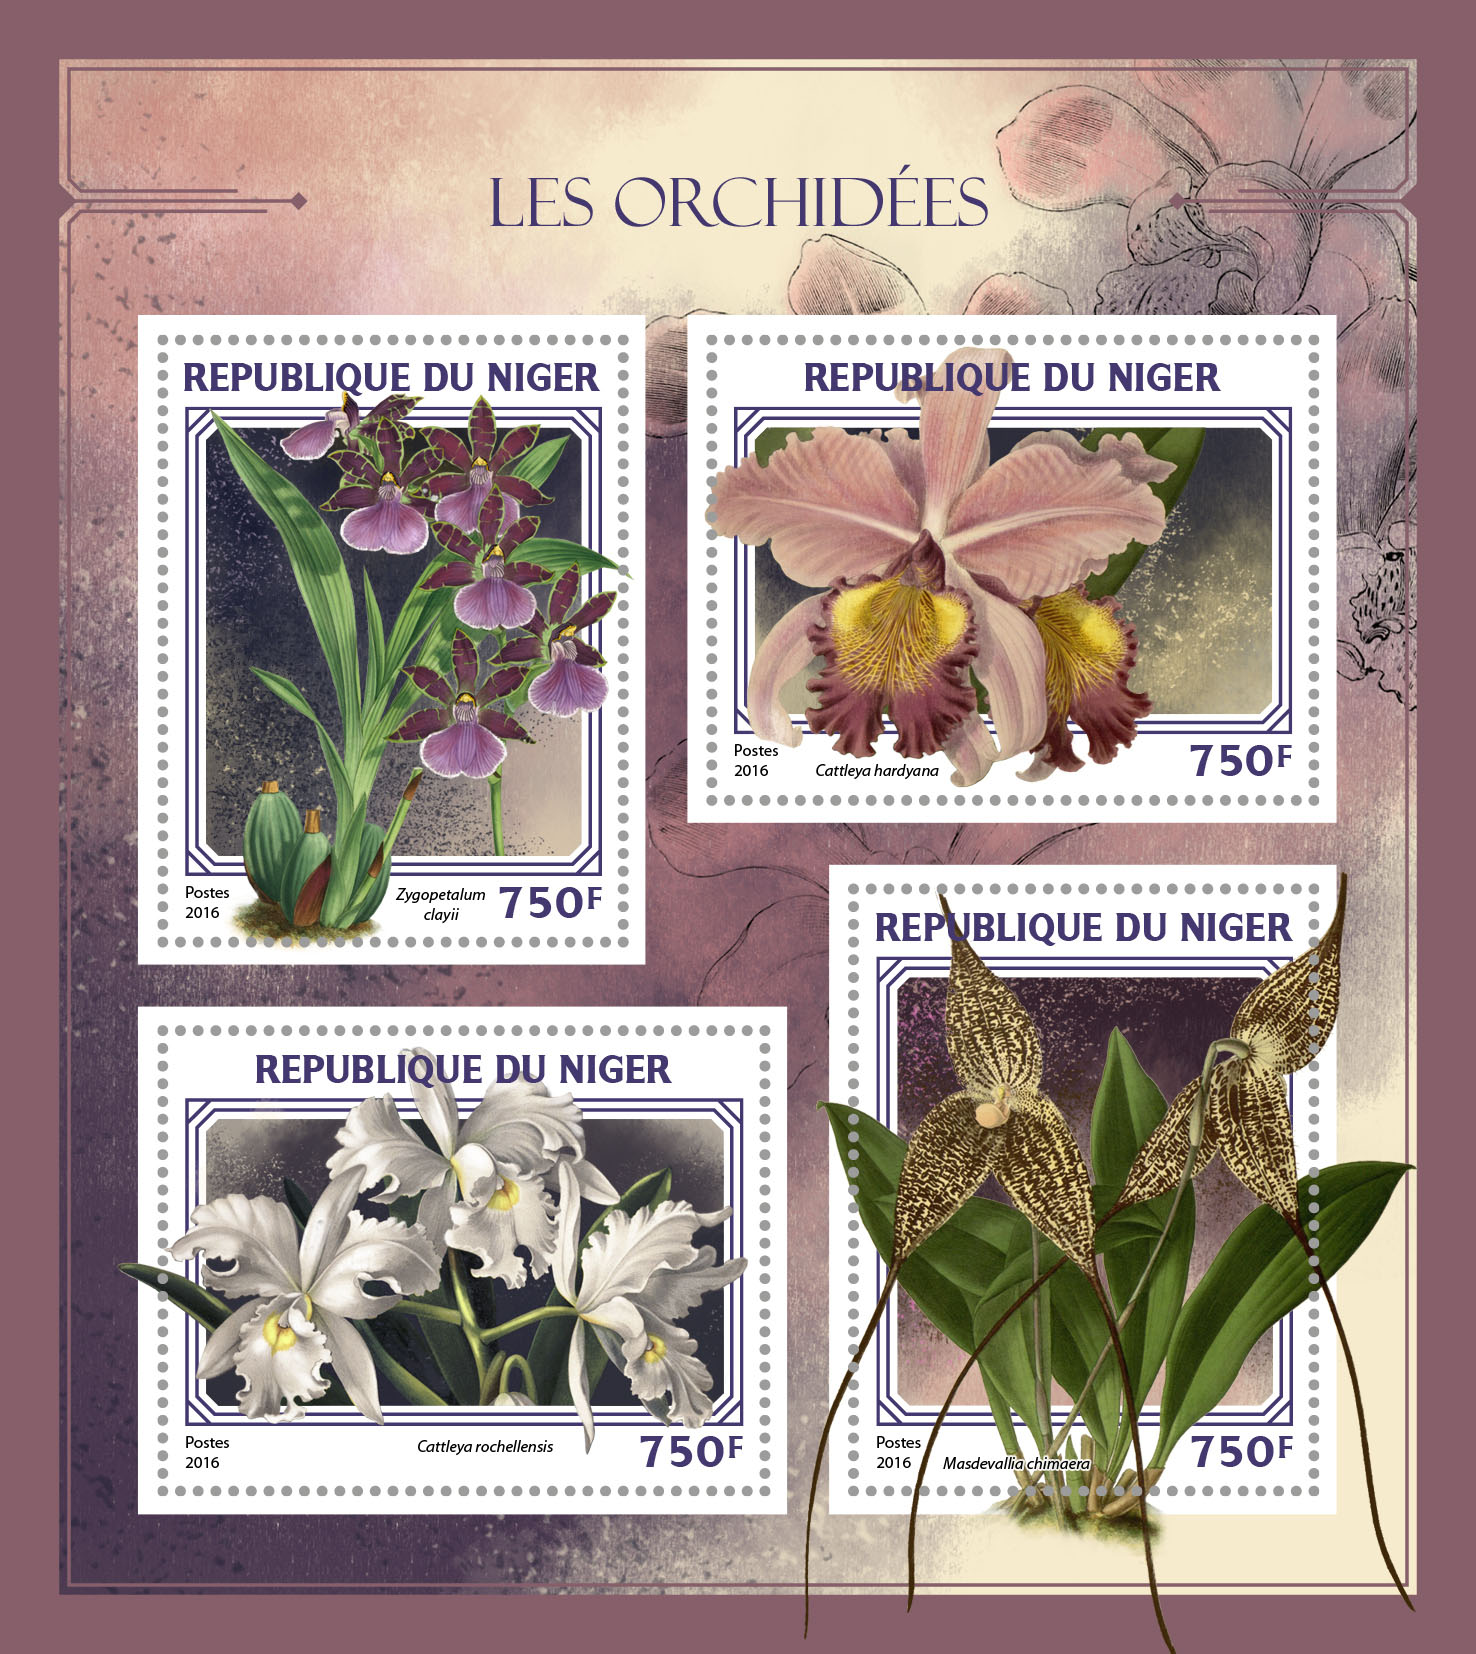 Orchids - Issue of Niger postage stamps